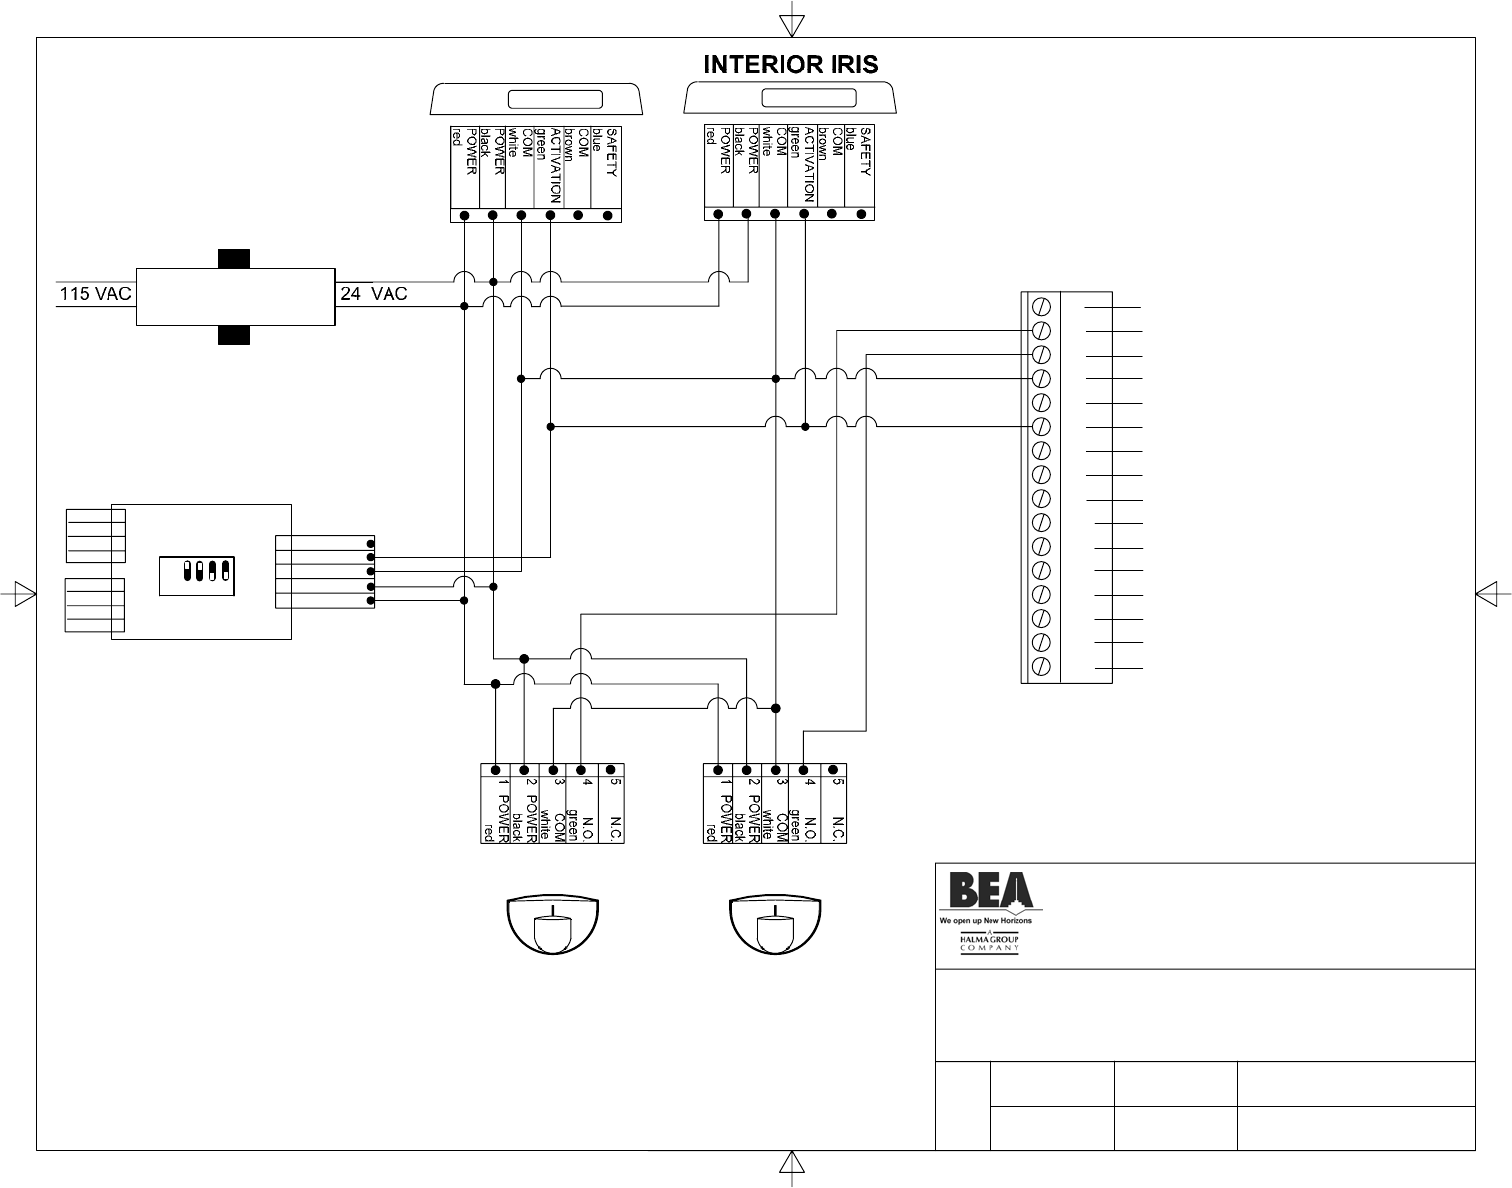 94039b03 c6f0 4630 ae4b cd4abc395ce4 bg1 bea switch c2150 user guide manualsonline com horton 4160 wiring diagram at panicattacktreatment.co